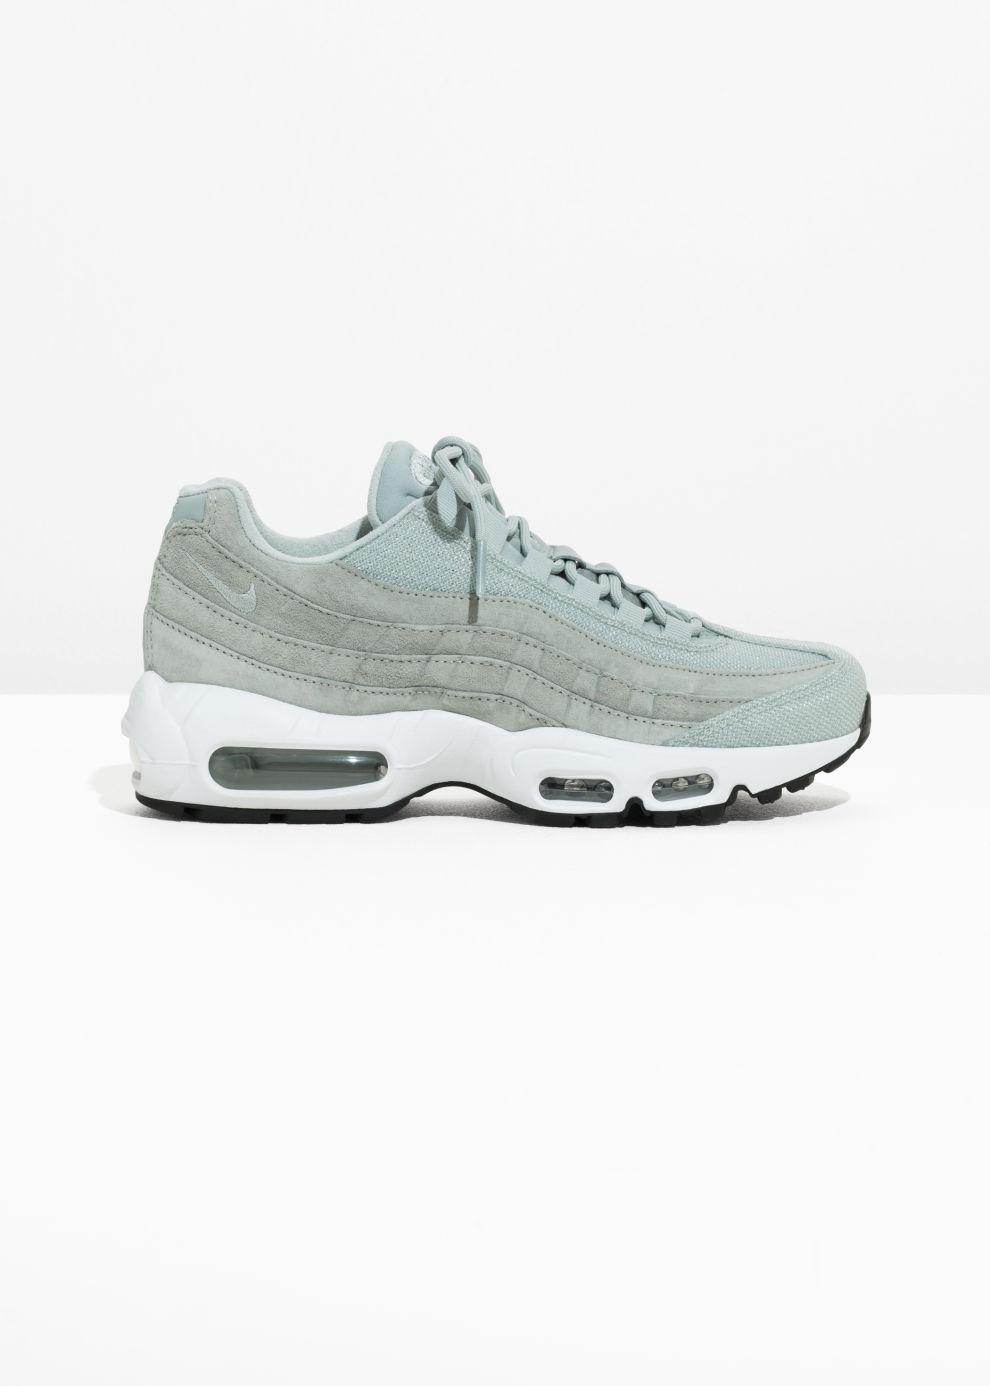 & Other Stories Rubber Nike Air Max 95 Prm in Green Lyst